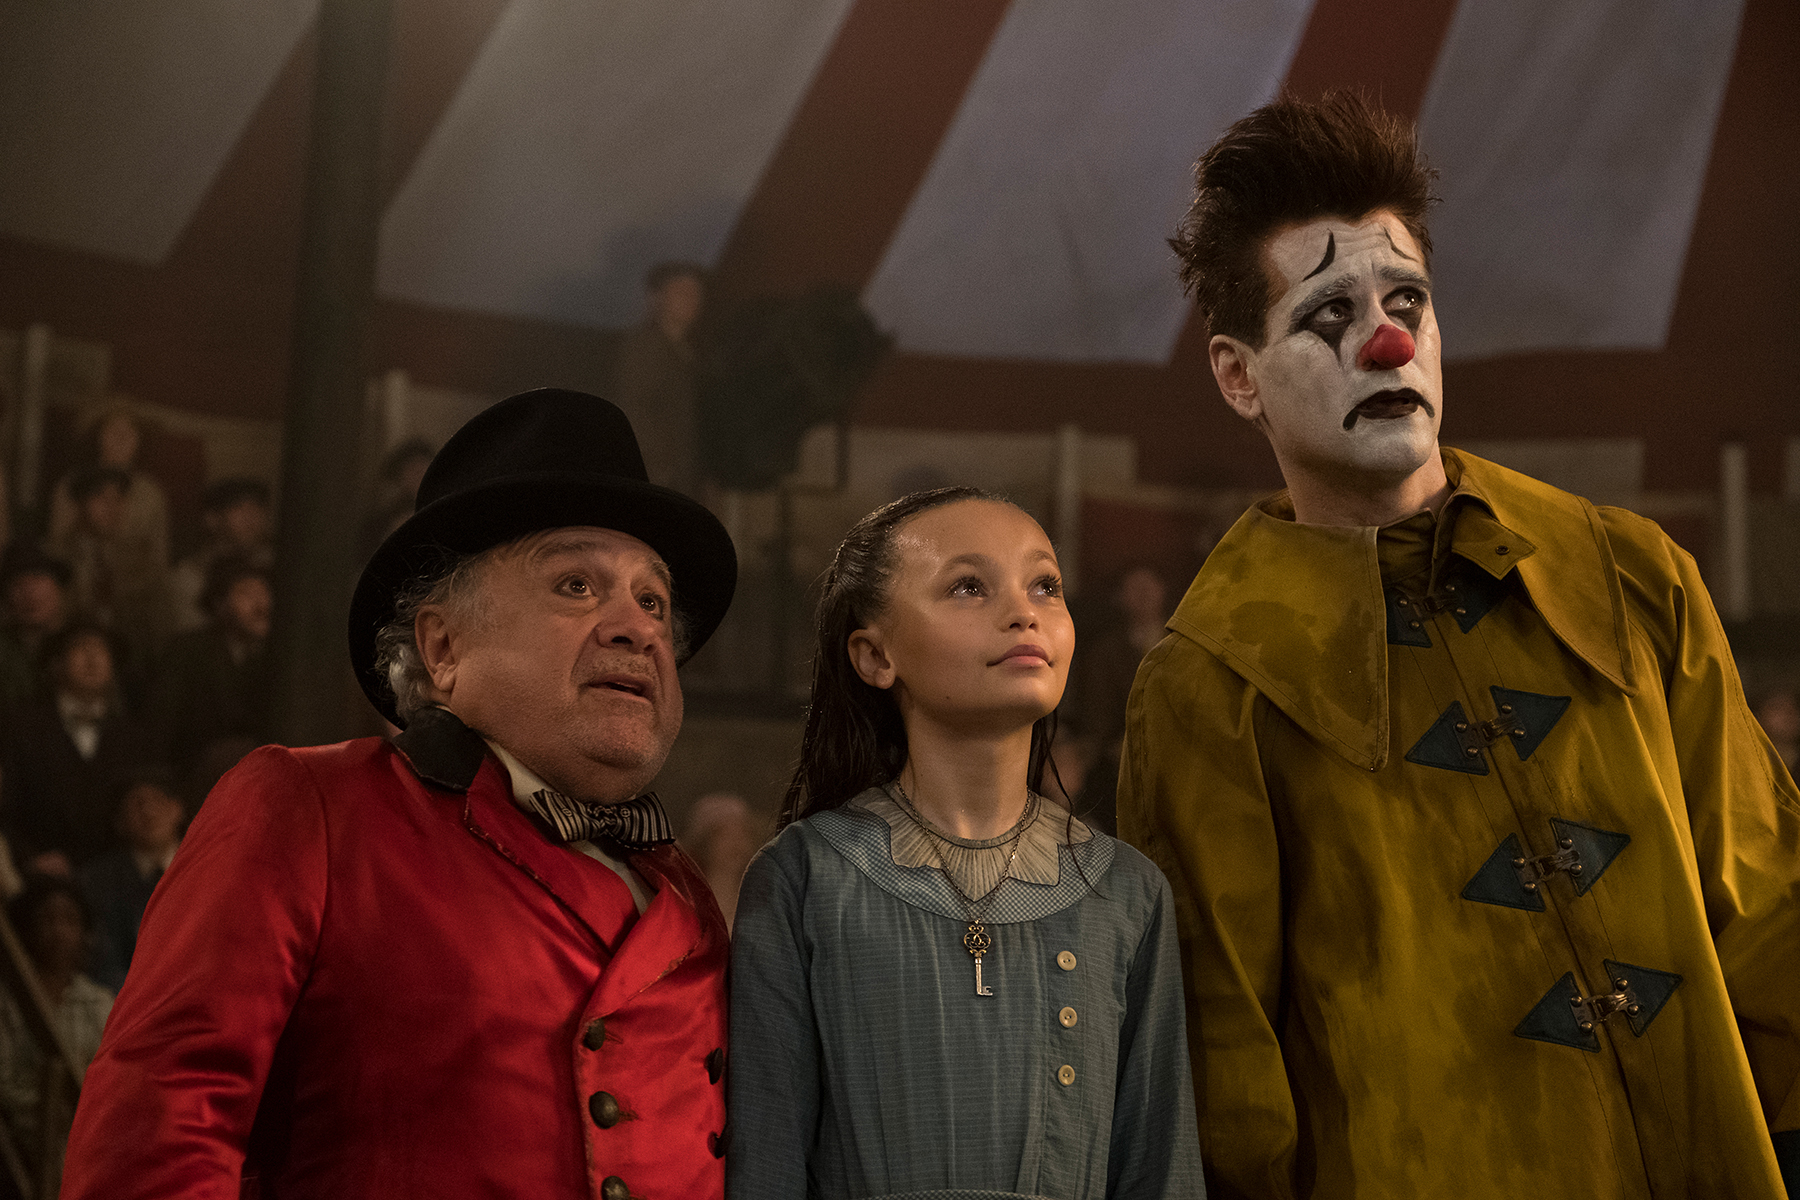 """In Tim Burton's 2019 live action reimagining of """"Dumbo,"""" circus owner Max Medici (Danny DeVito) calls on former circus star Holt Farrier (Colin Farrell) to care for a newborn elephant whose oversized ears make him a laughingstock in an already struggling circus. Holt ultimately takes his task very seriously—even donning a clown suit to help the flying elephant as he emerges as a star. Daughter Milly (Nico Parker) just might be Dumbo's biggest fan."""